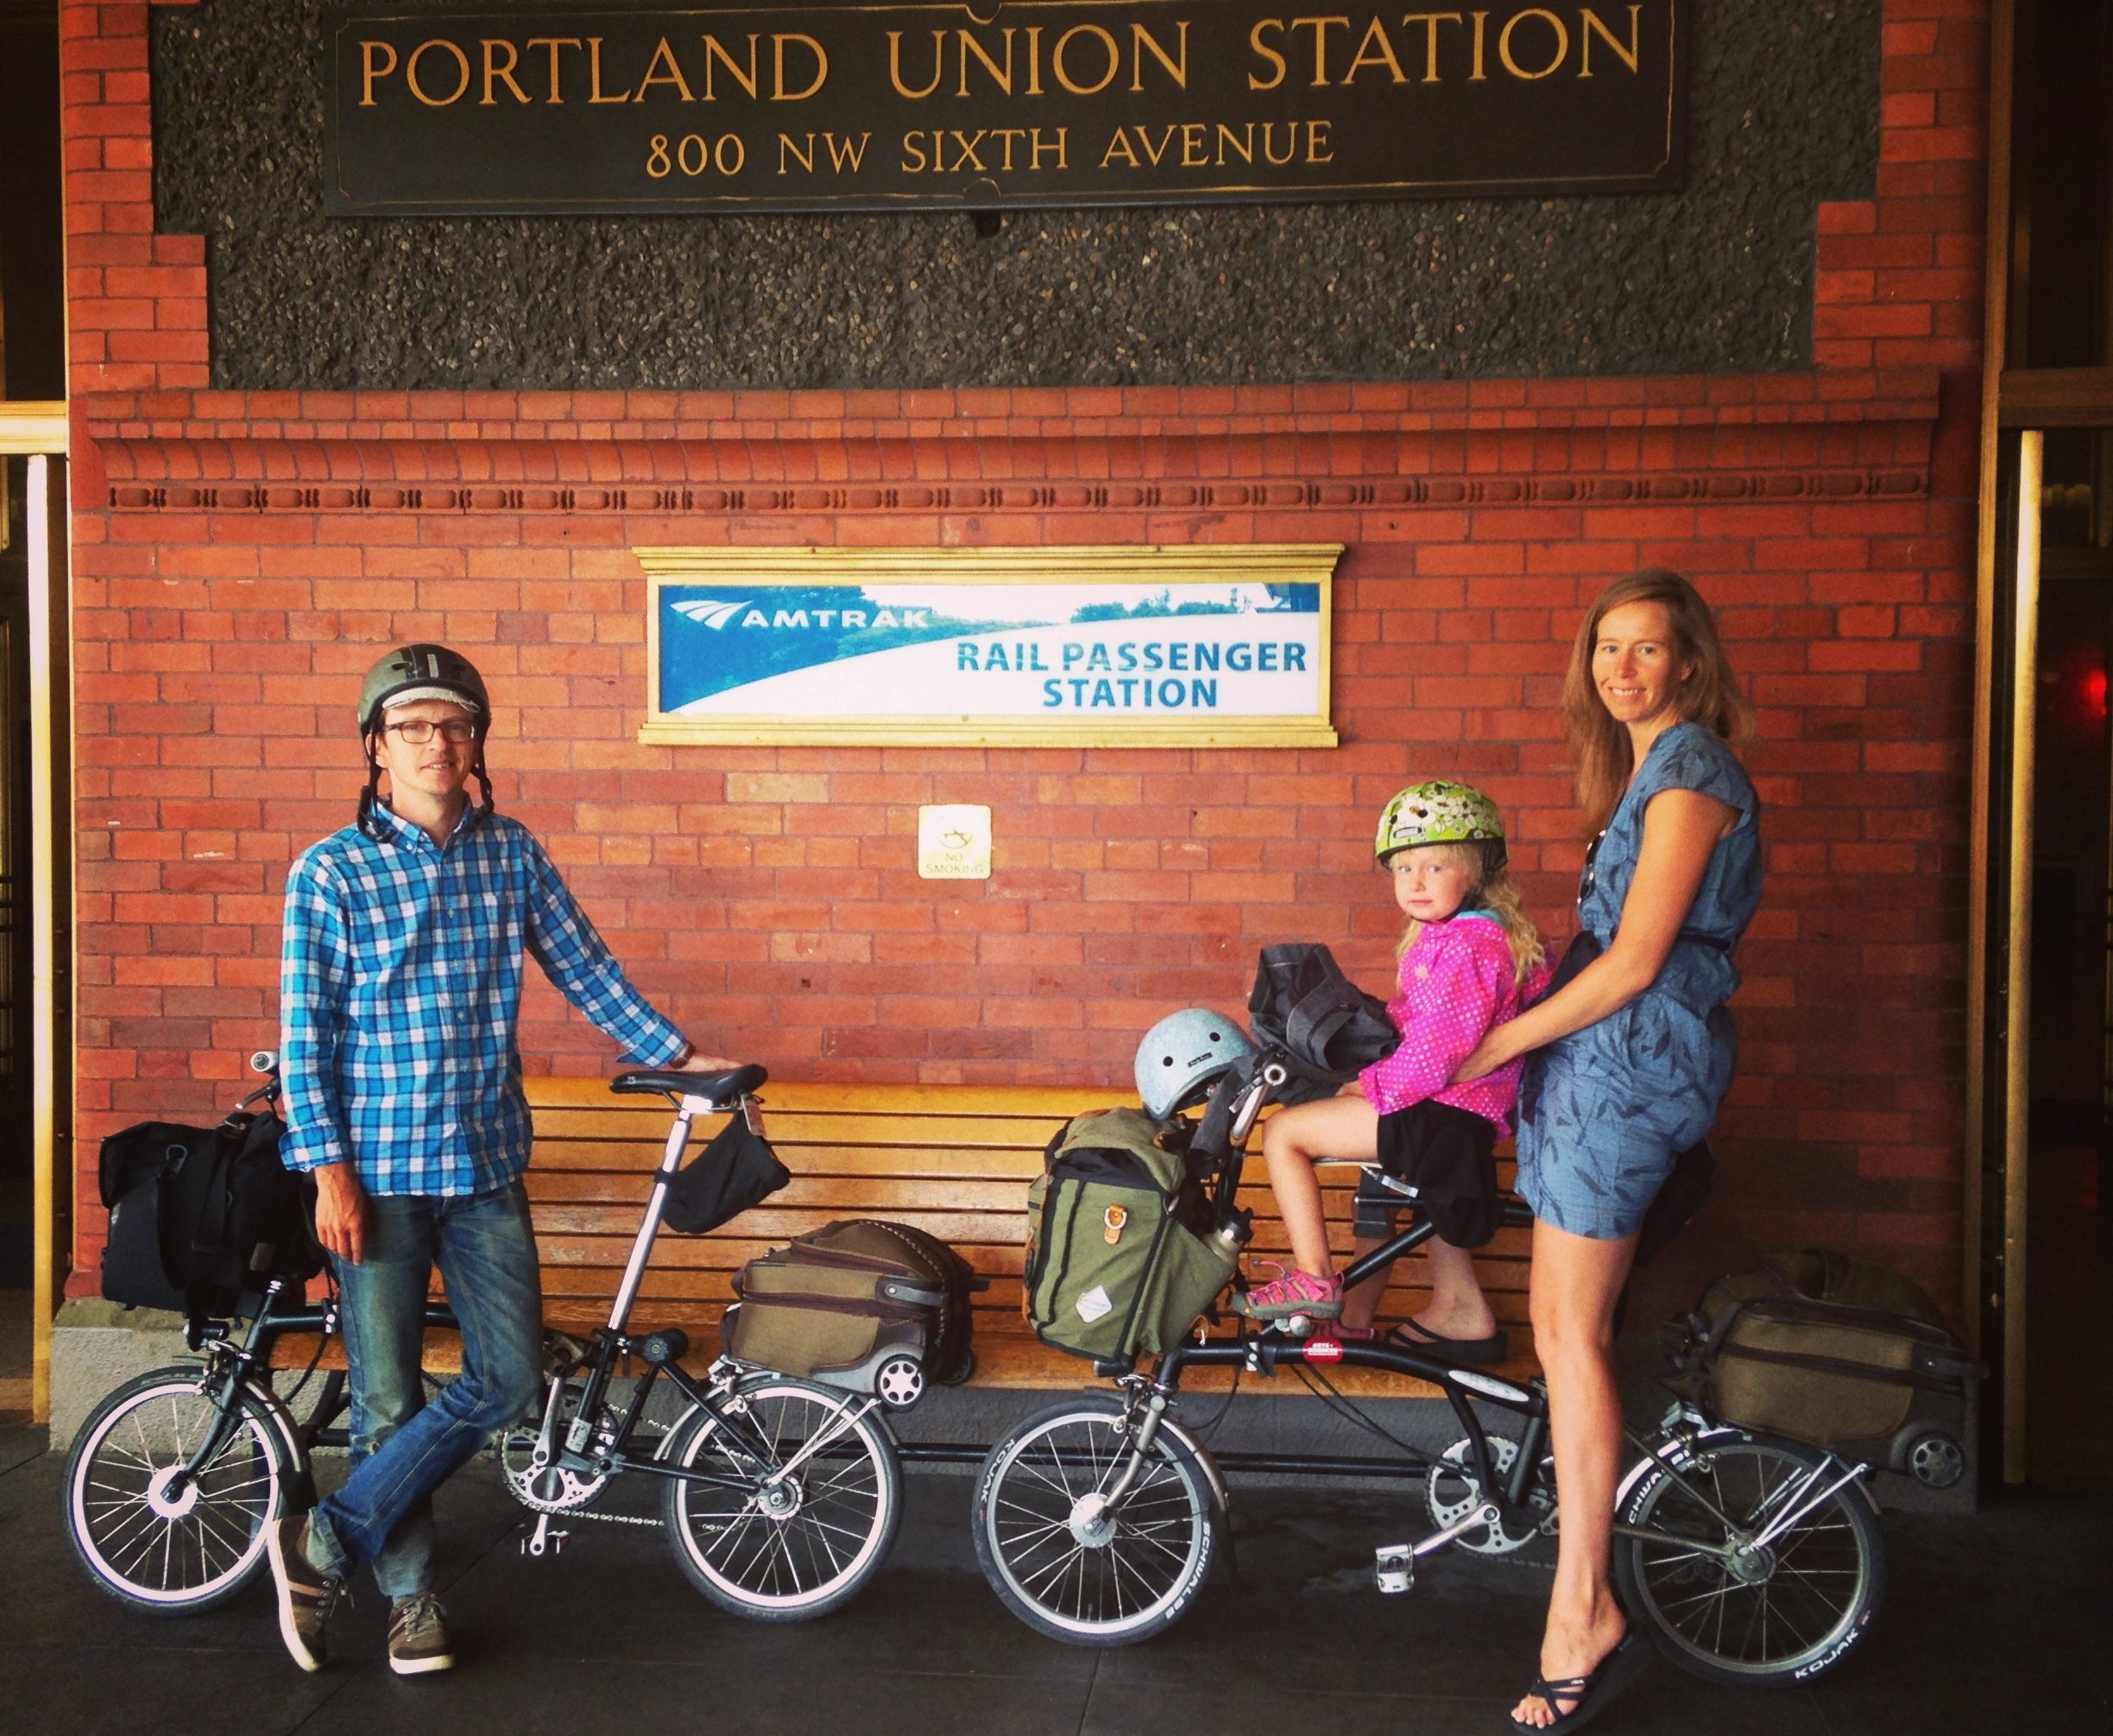 Bikabout-Amtrak-bikes-on-train-at-Portland-Union-Staton.JPG